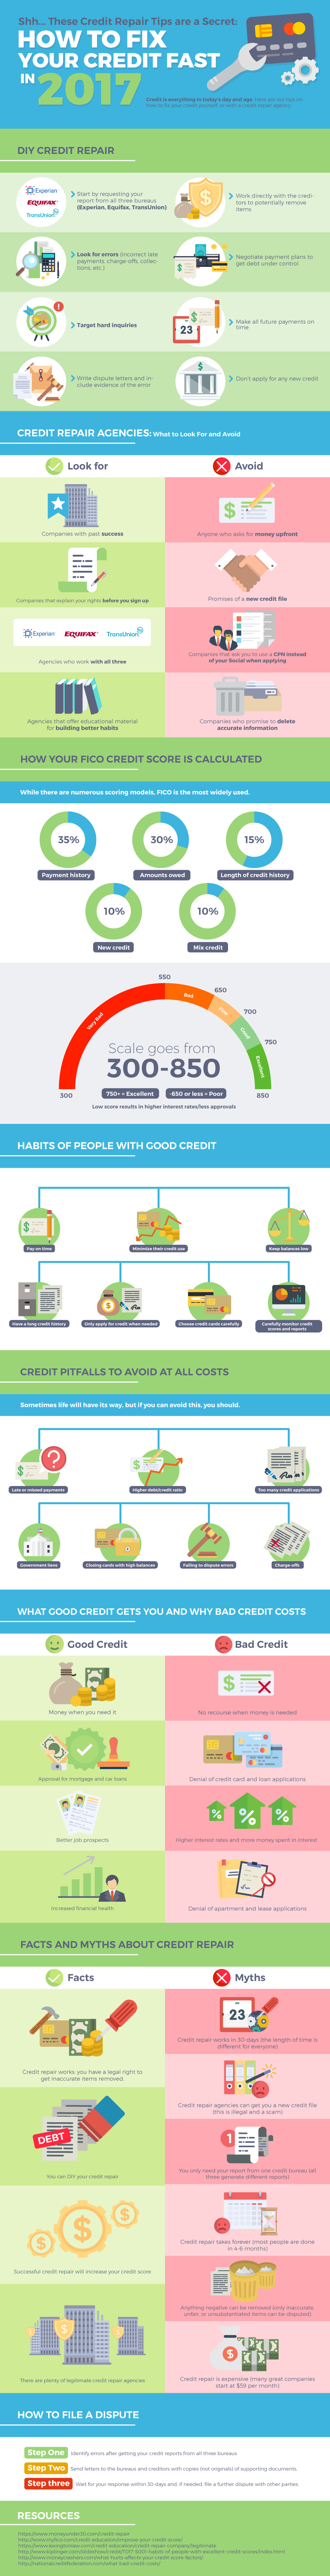 how to fix your credit infographic